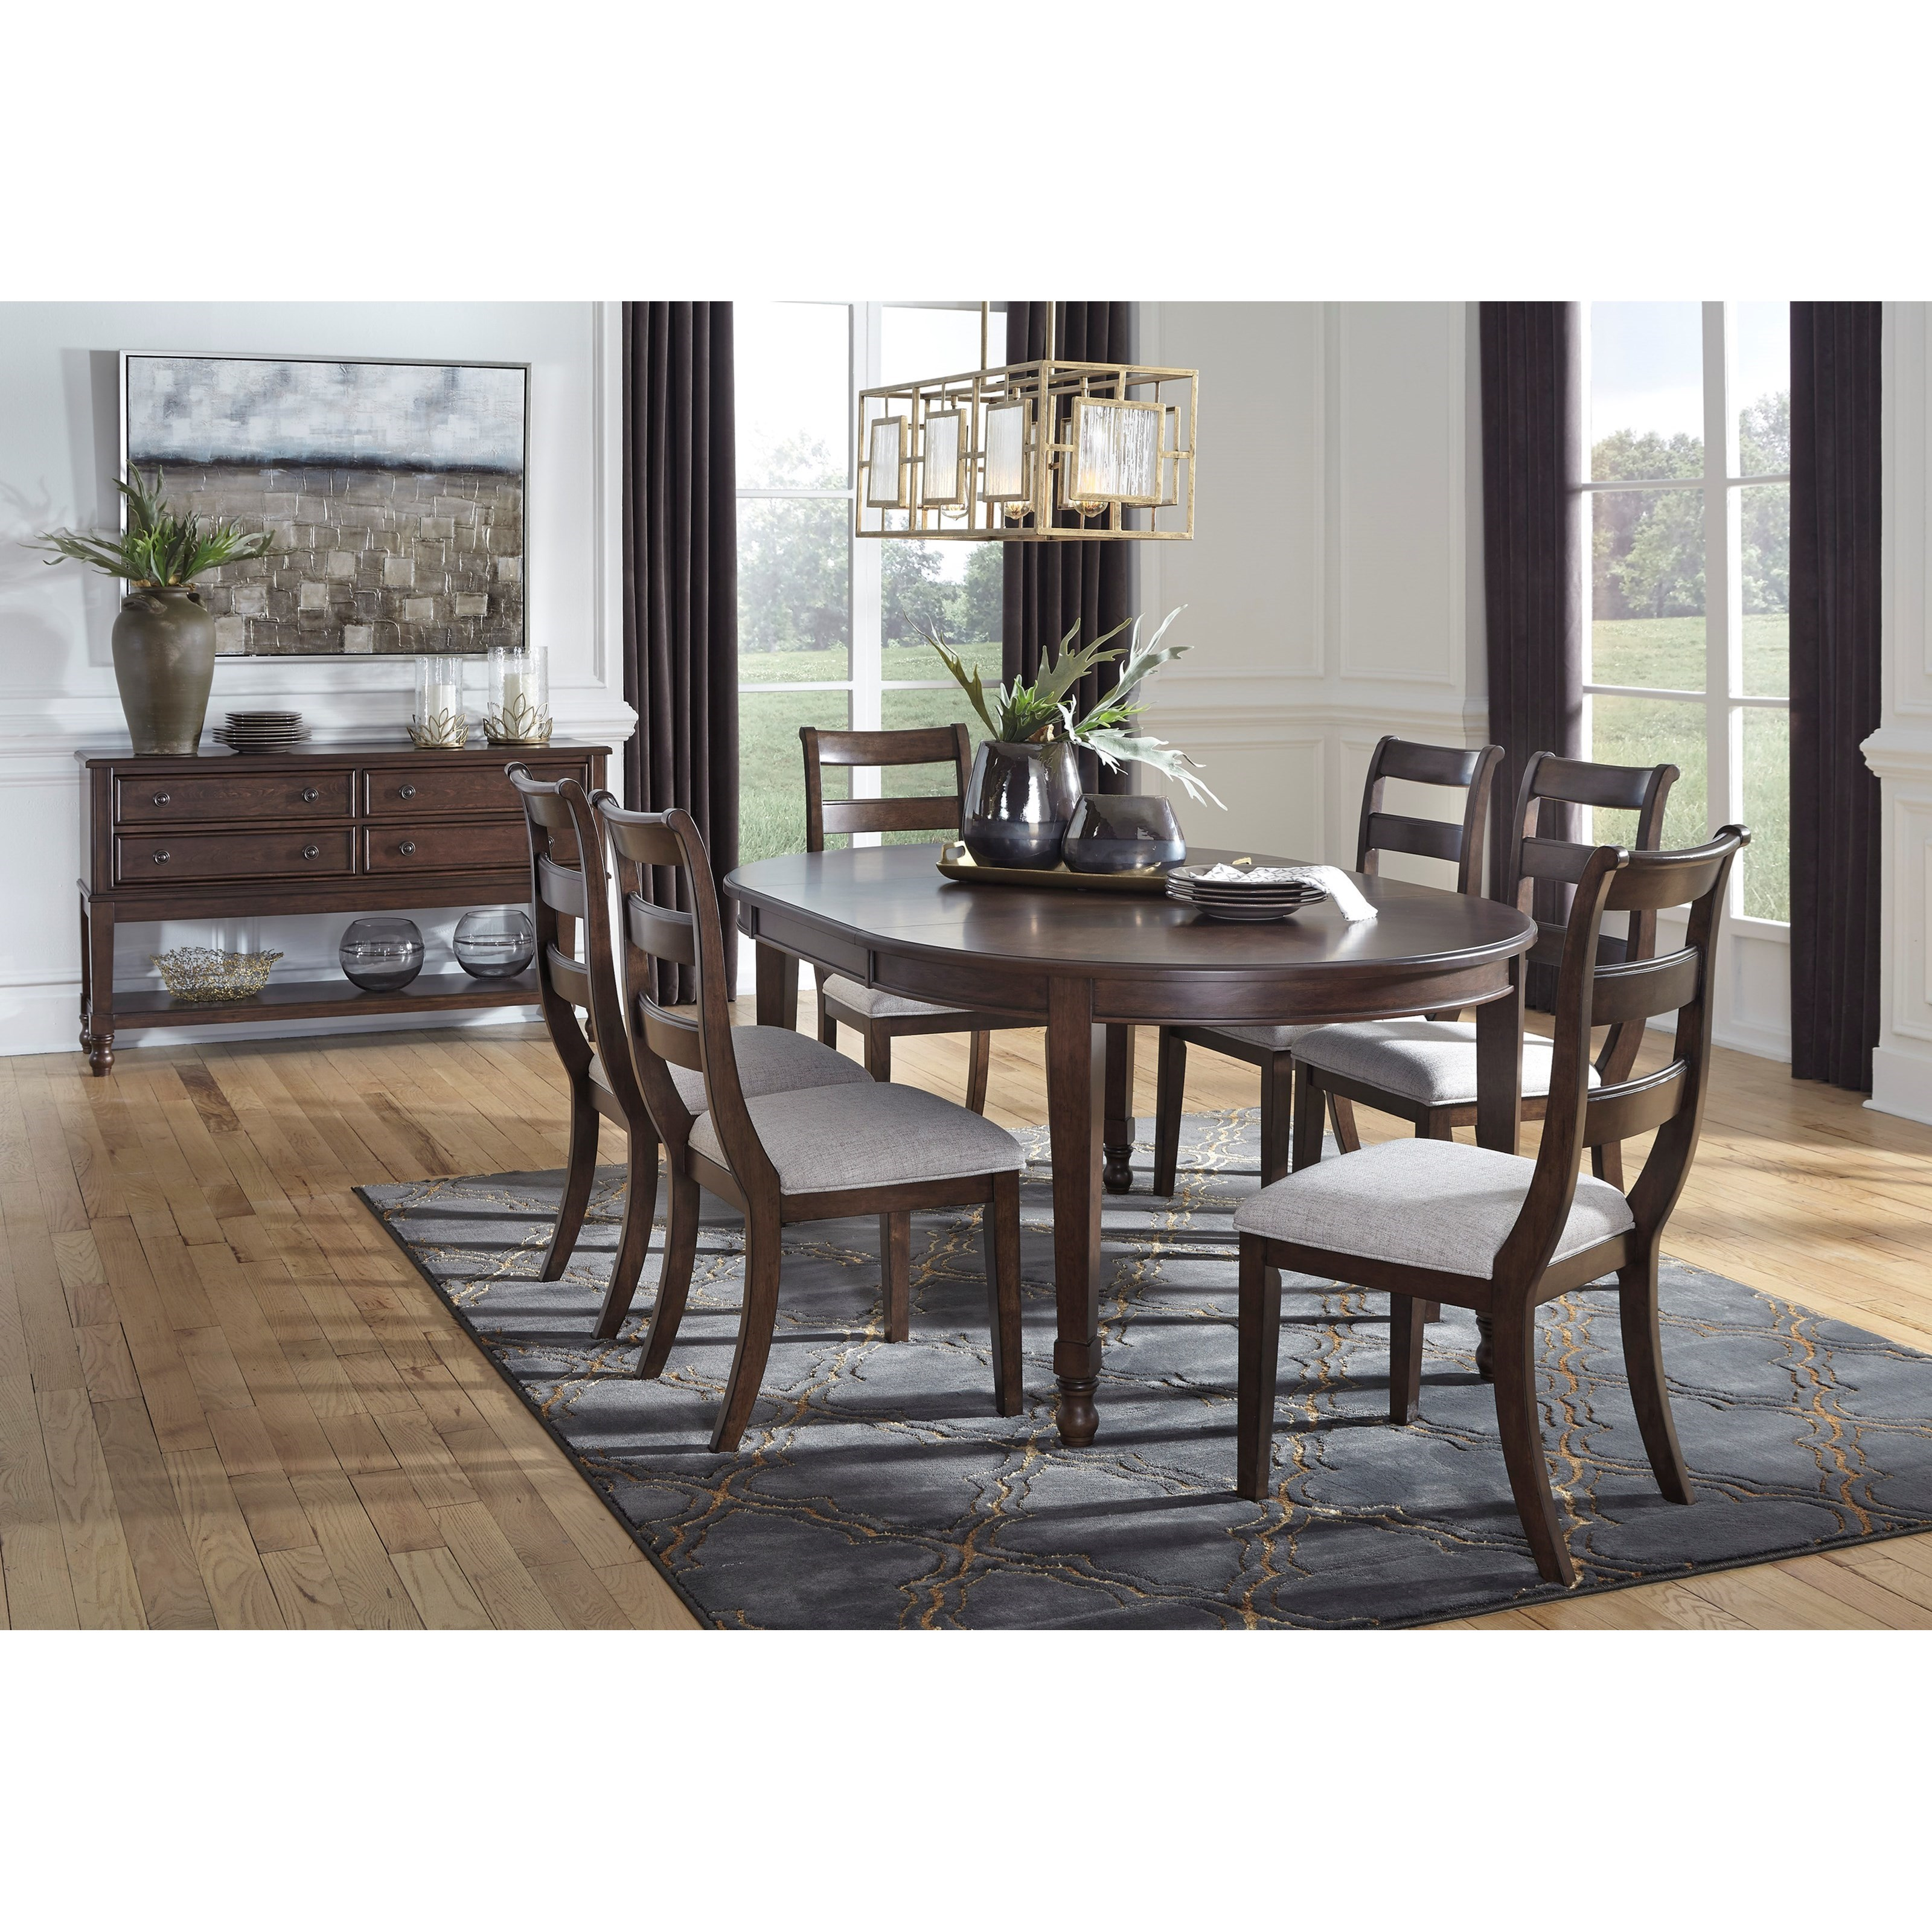 Adinton Formal Dining Room Group by Benchcraft at Virginia Furniture Market